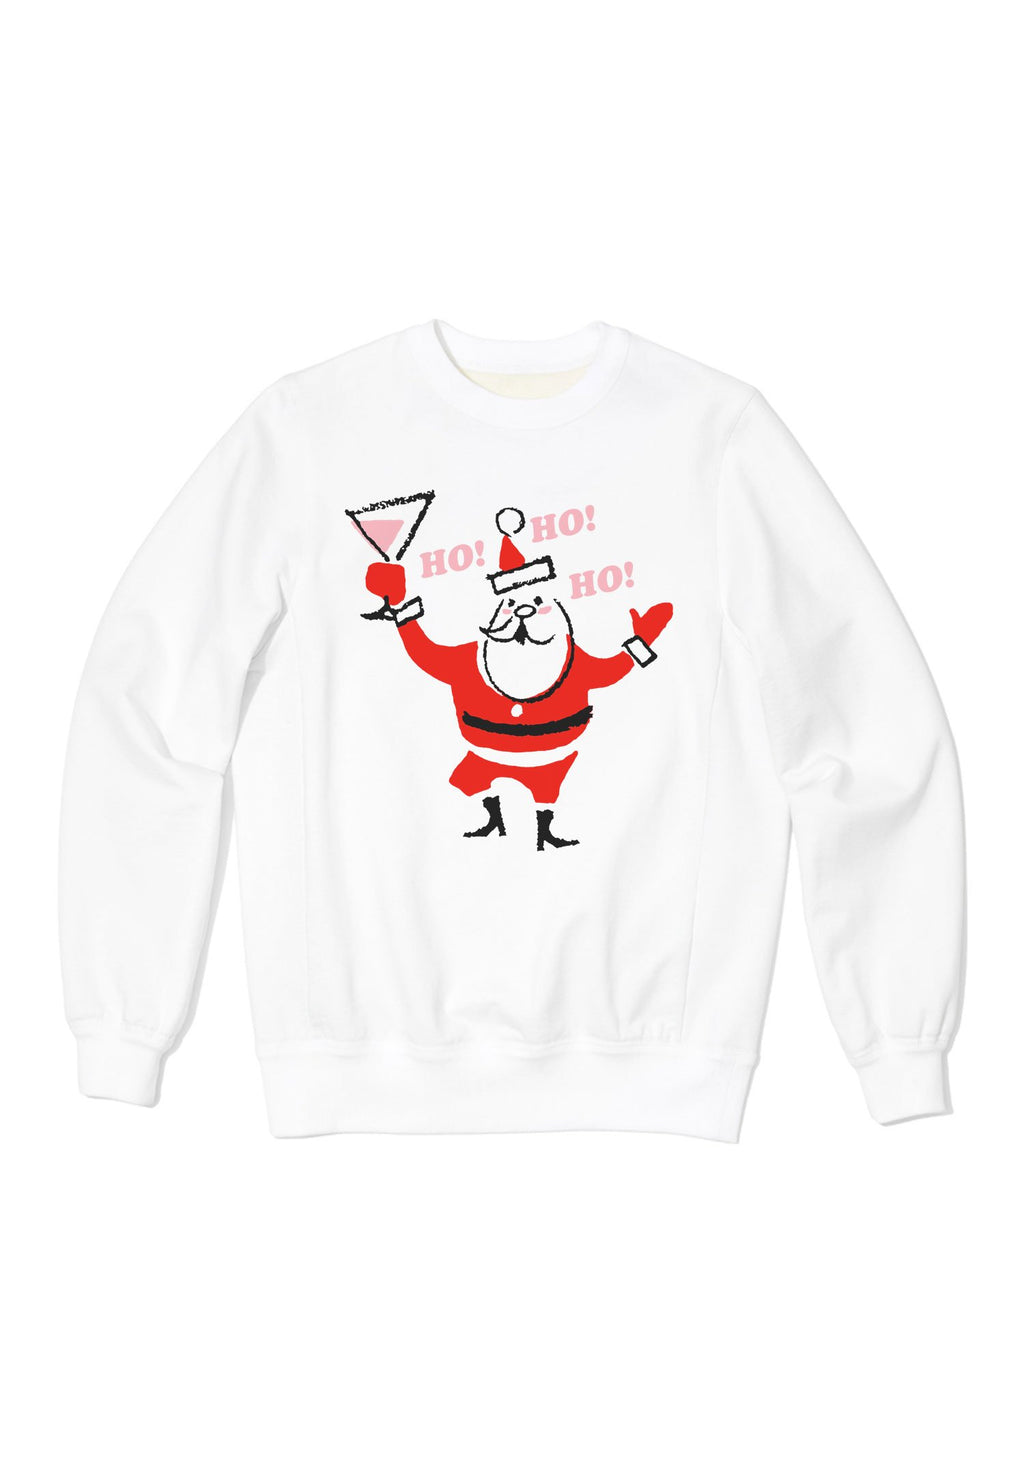 Holiday Spirit Sweatshirt / sweatshirts with sayings for women / christmas holiday santa claus sweaters / cozy womens vintage style sweater